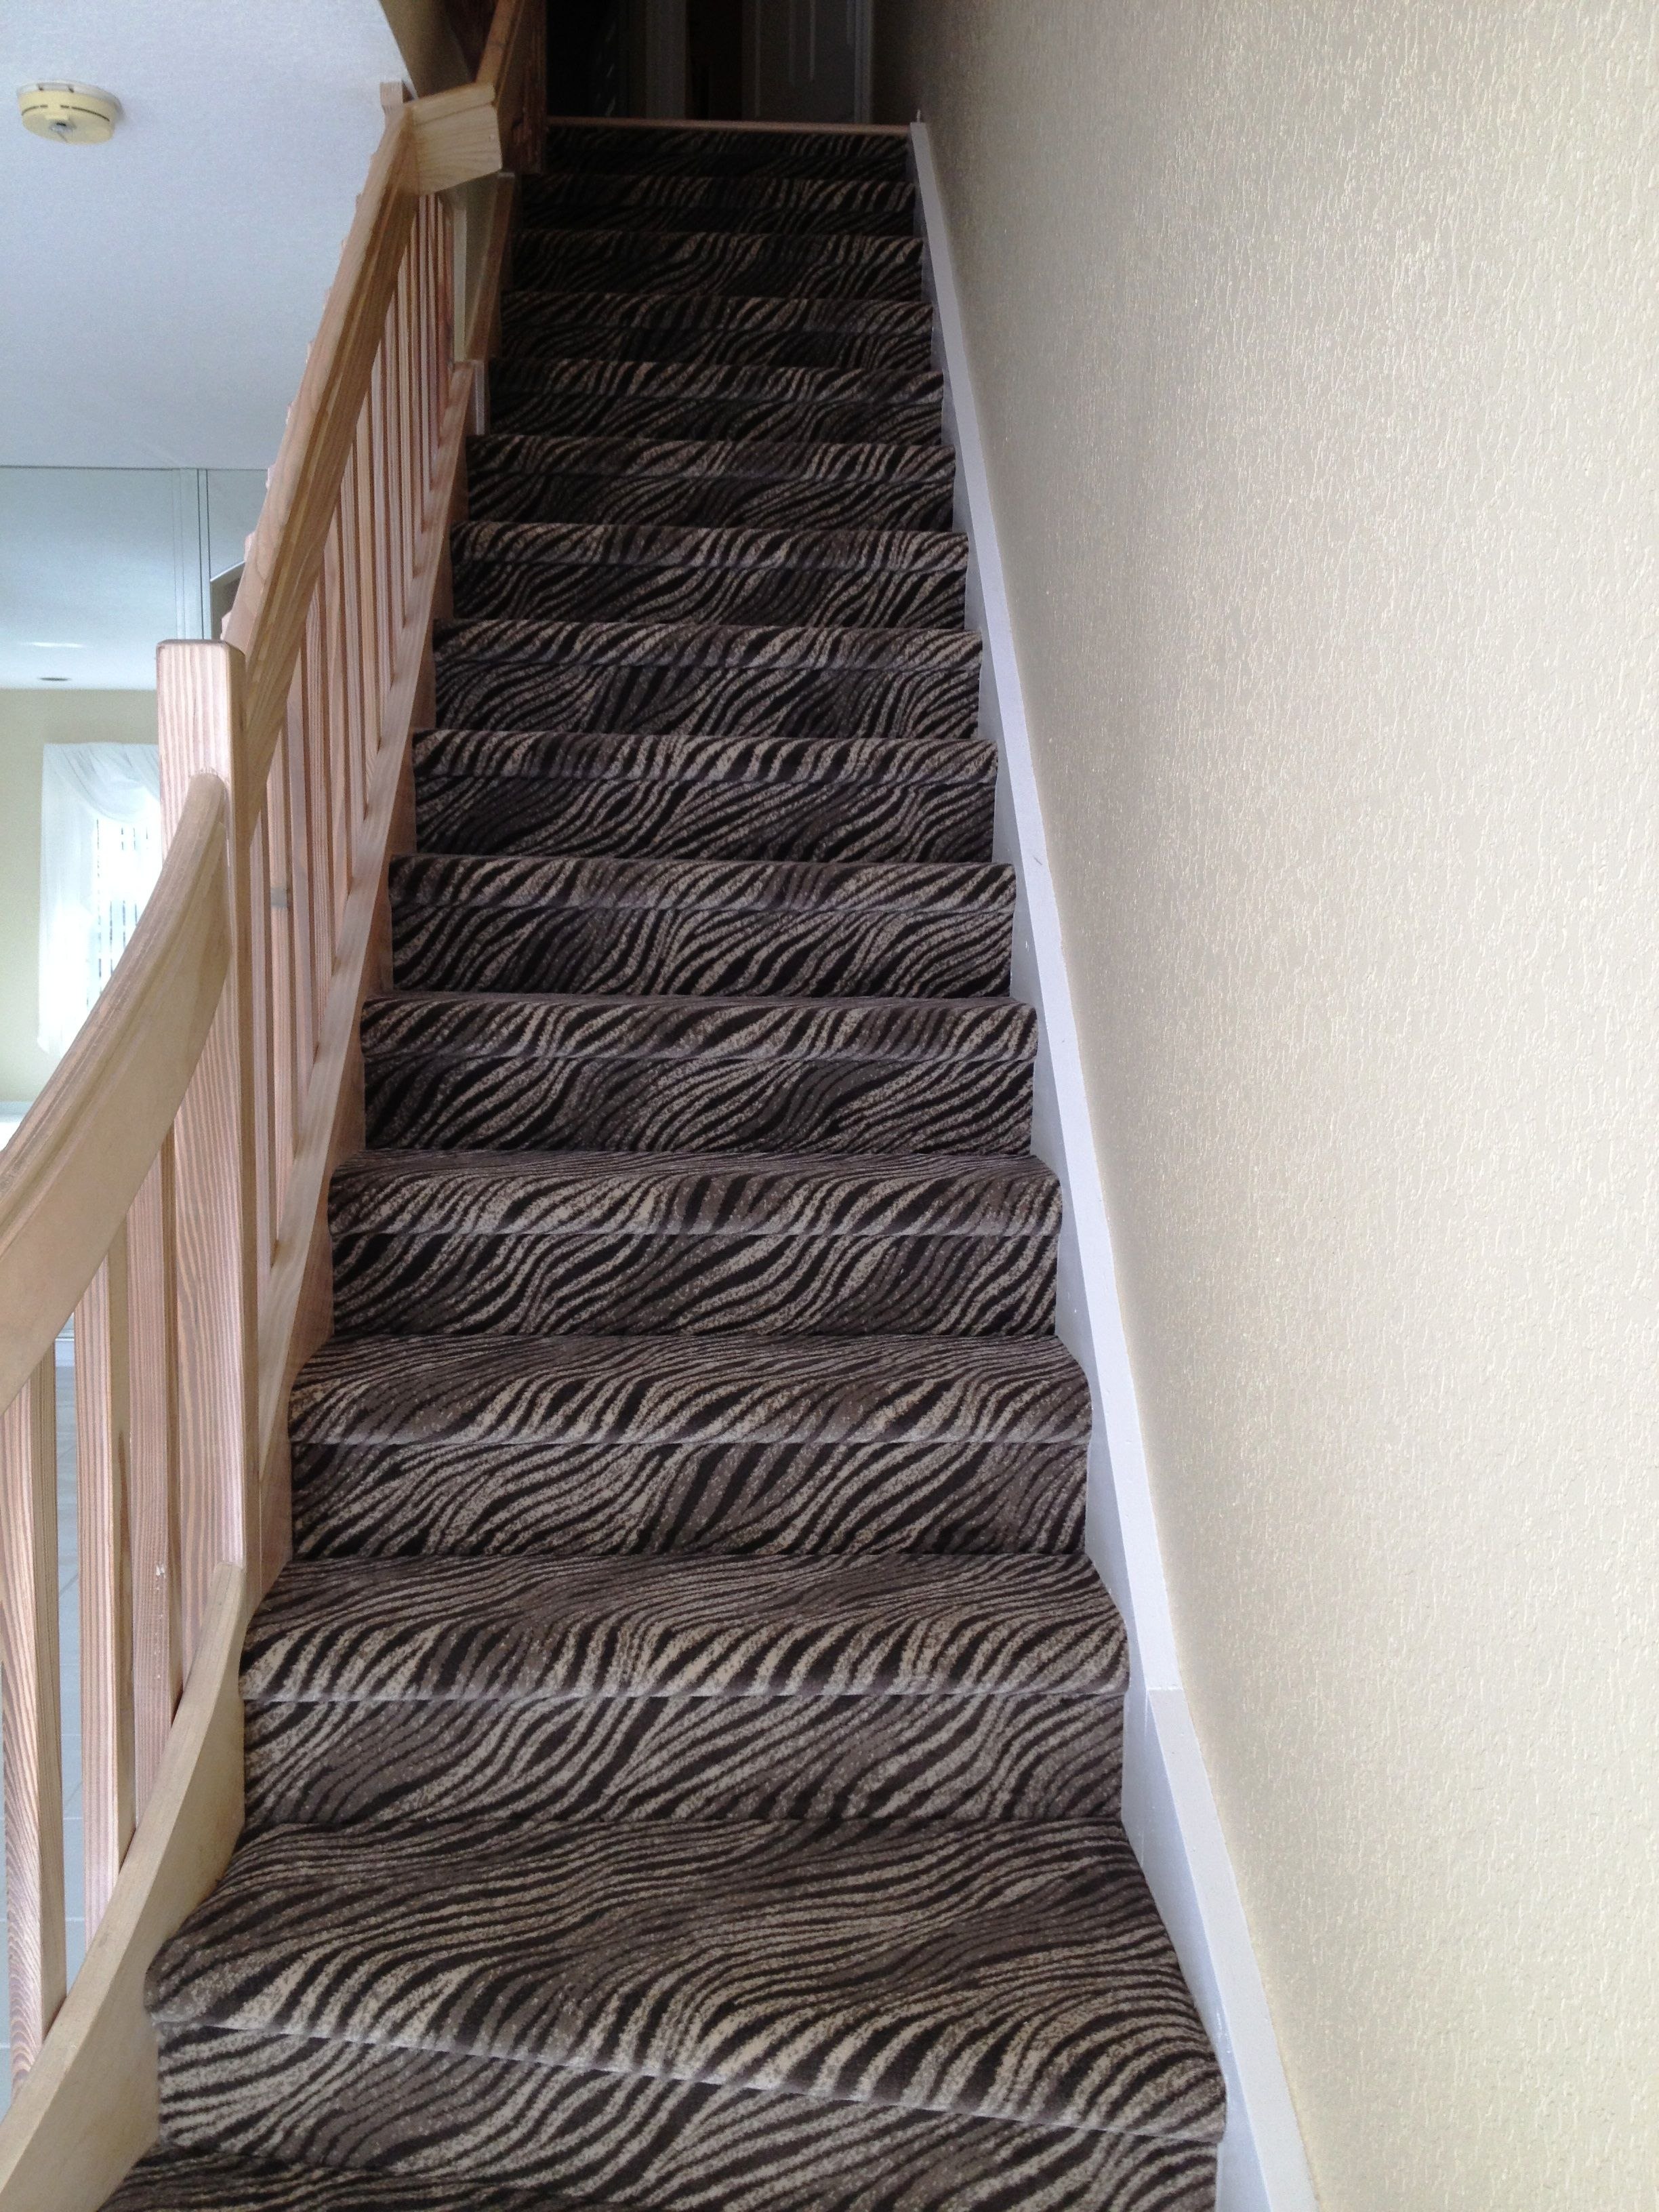 Check Out These Awesome Steps Where We Used Stanton Carpets Zaire Shilling For Sarae S